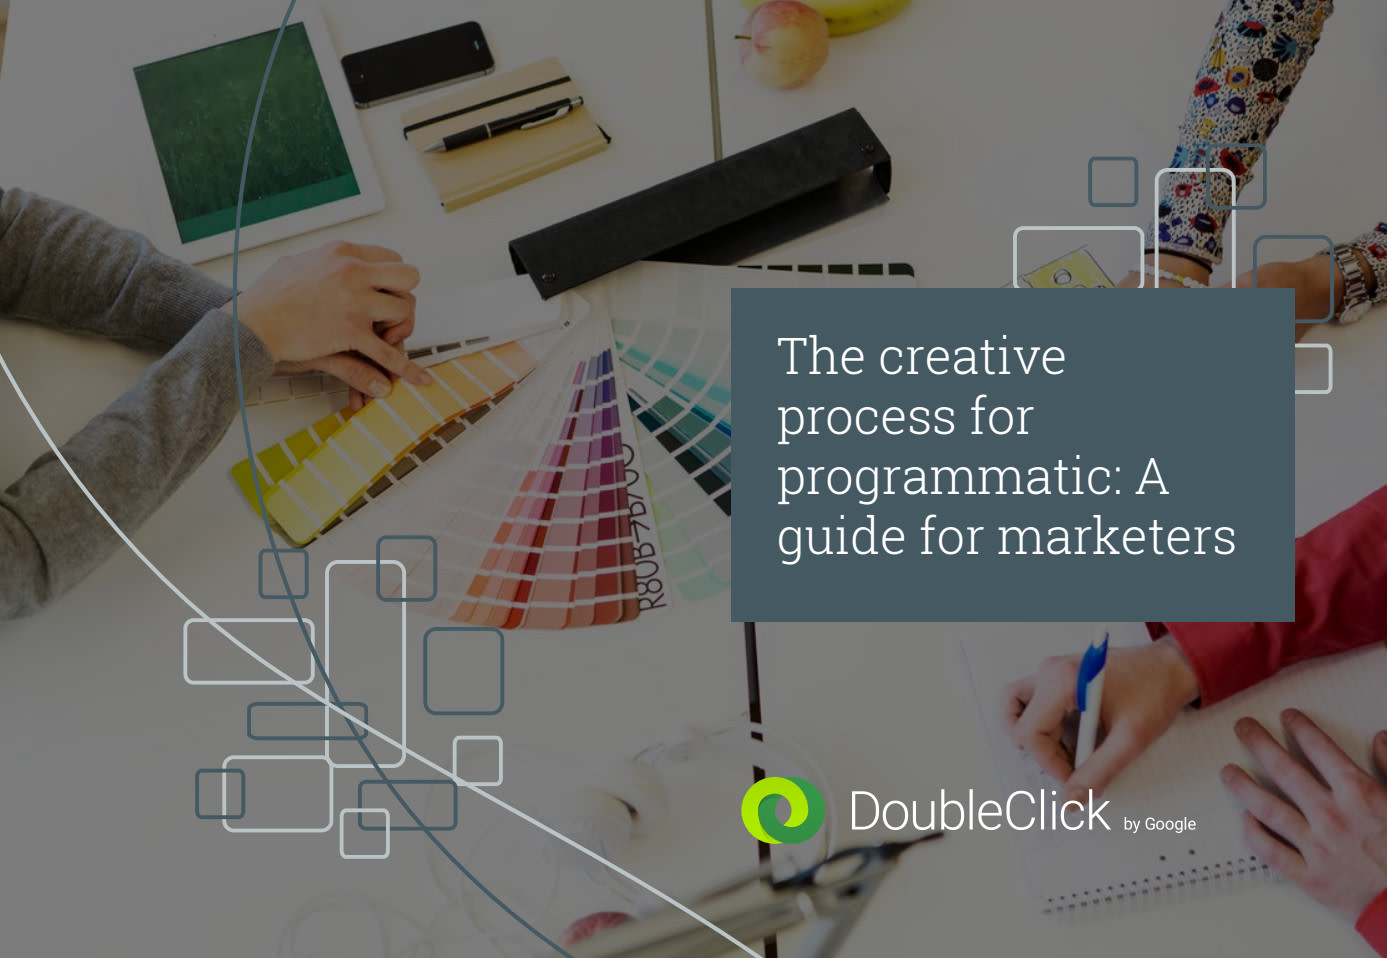 DoubleClick by Google Whitepaper